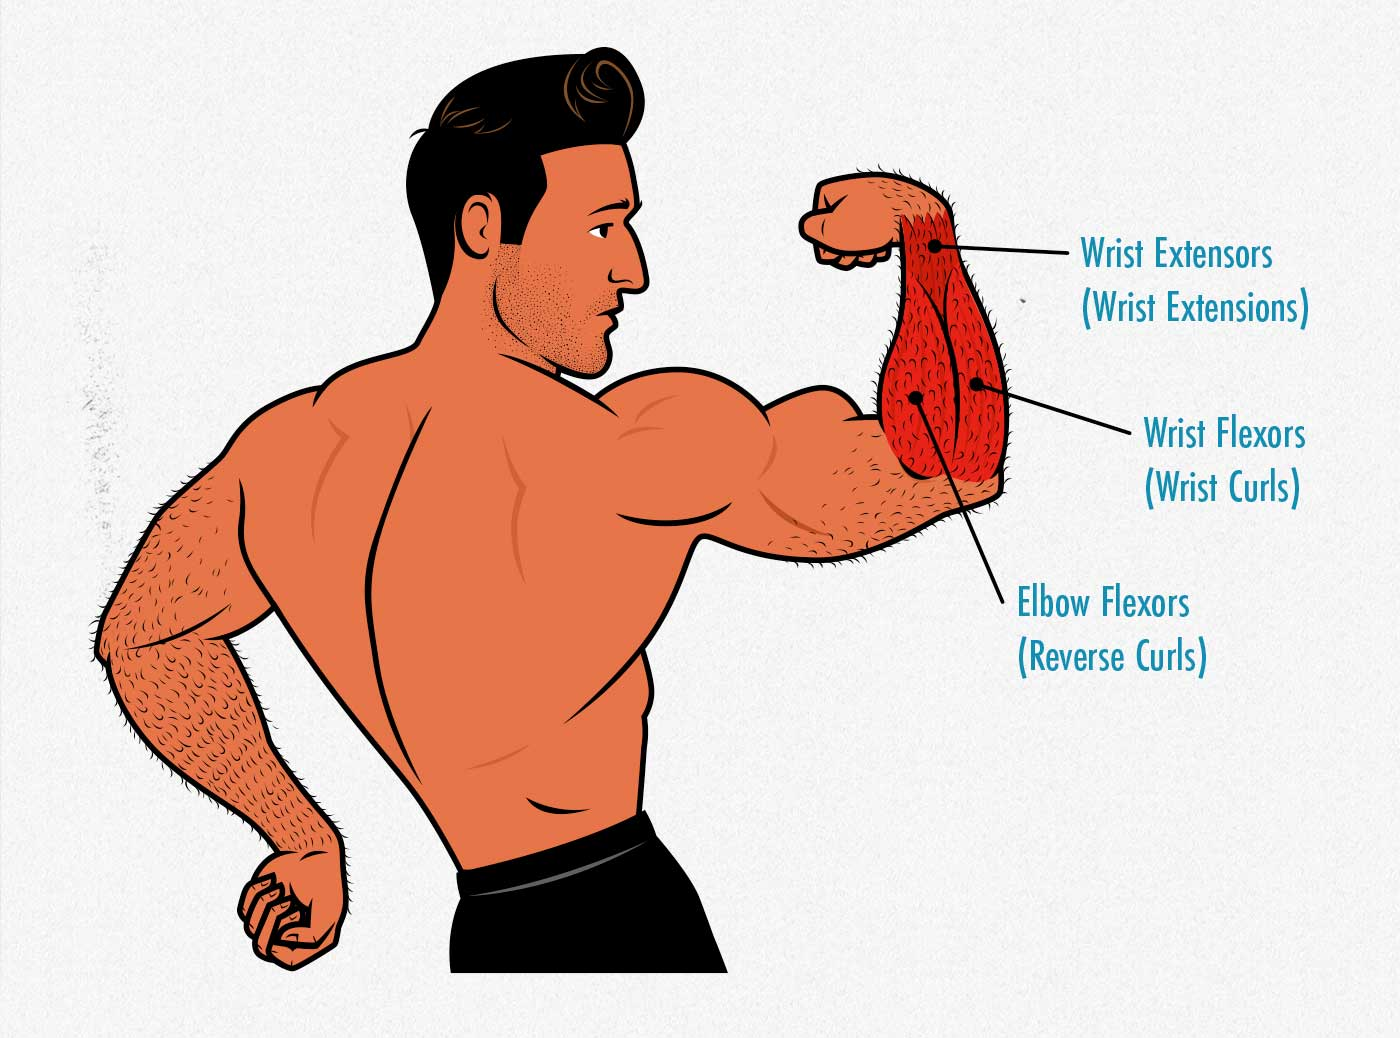 Illustration of a man flexing his forearm muscles.